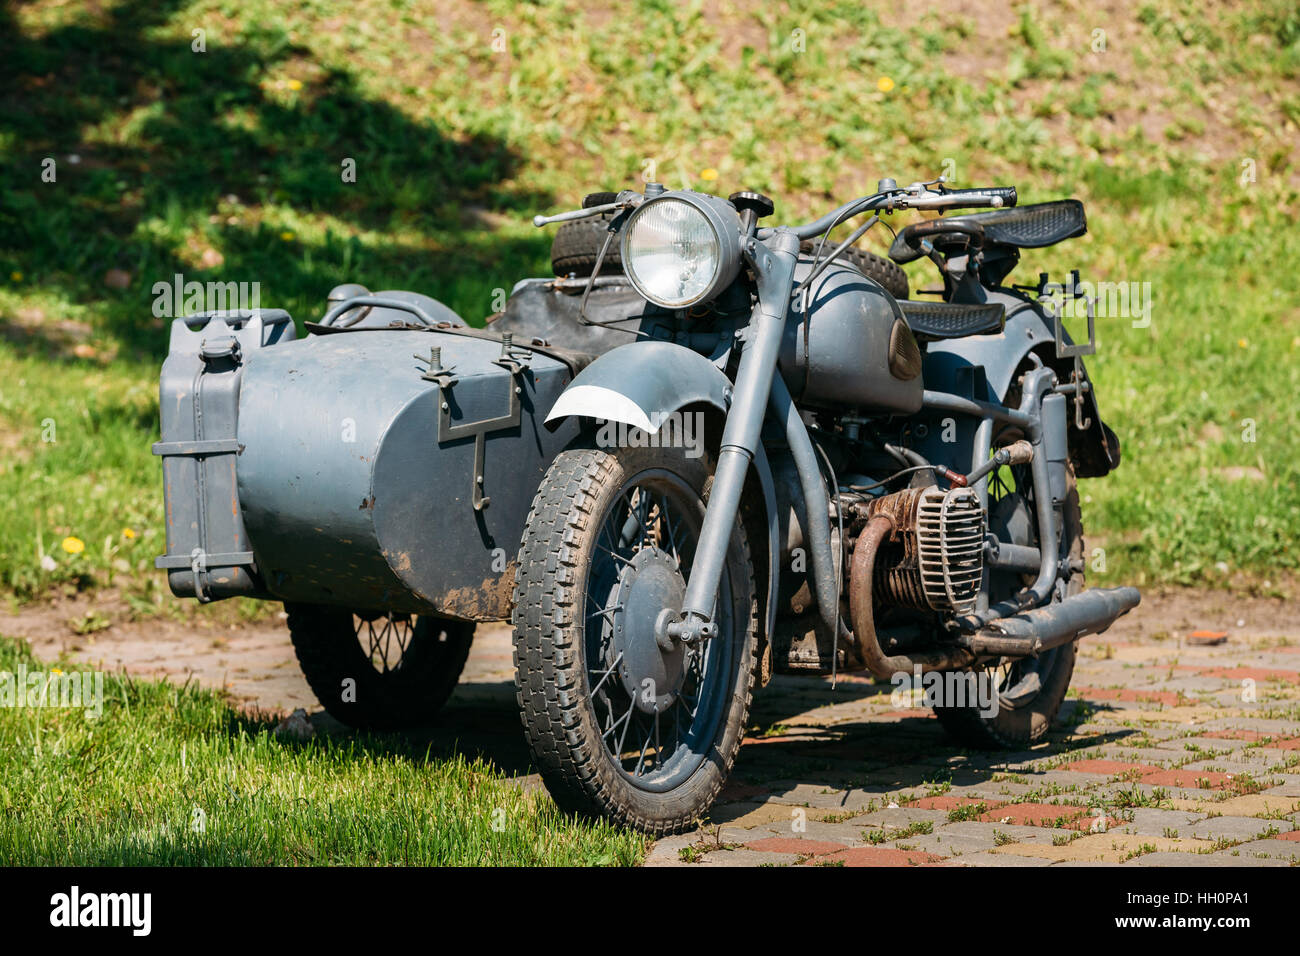 The Old Rarity Tricar, Three-Wheeled Gray Motorcycle With A Sidecar Of German Forces Of World War 2 Time Standing - Stock Image